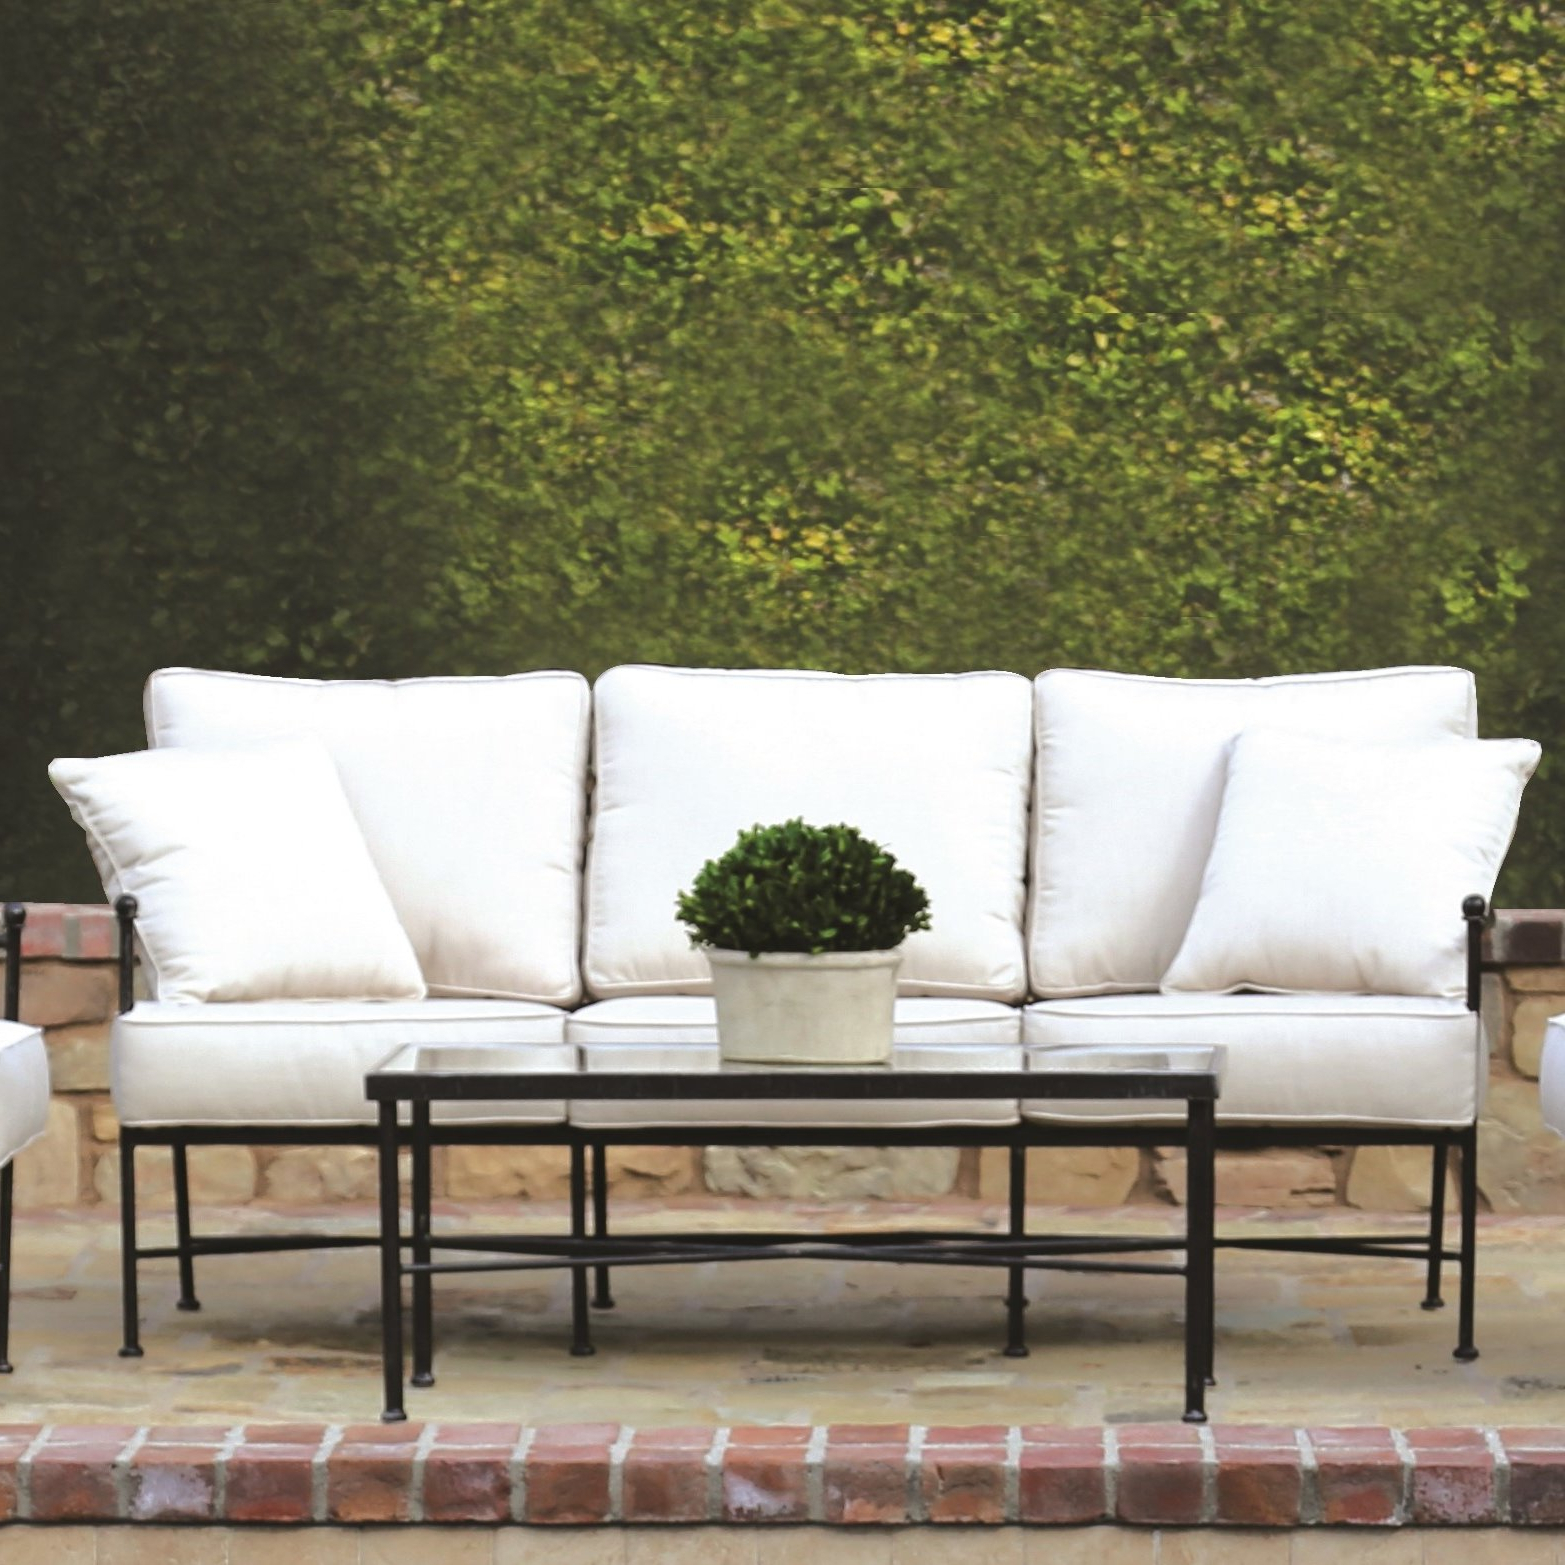 Keever Patio Sofas With Sunbrella Cushions With Regard To Well Liked Provence Patio Sofa With Sunbrella Cushions (View 12 of 20)